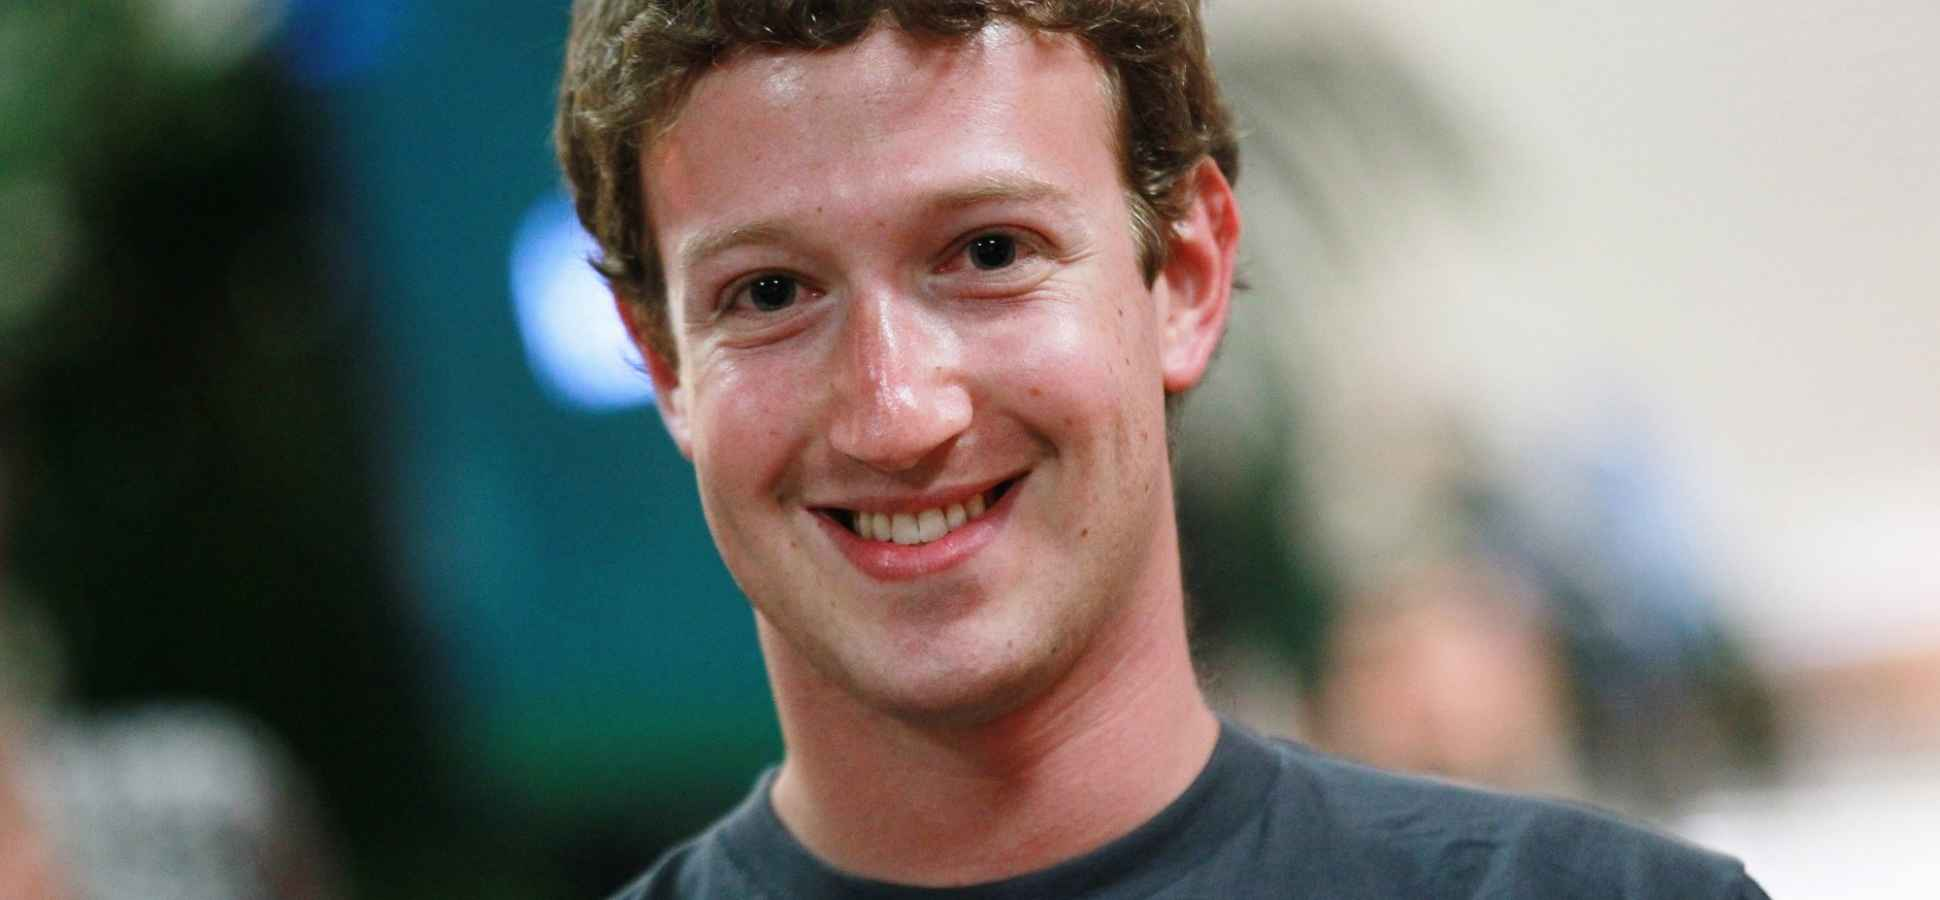 The Daily Habits That Keep Mark Zuckerberg and Richard Branson Crazy Successful